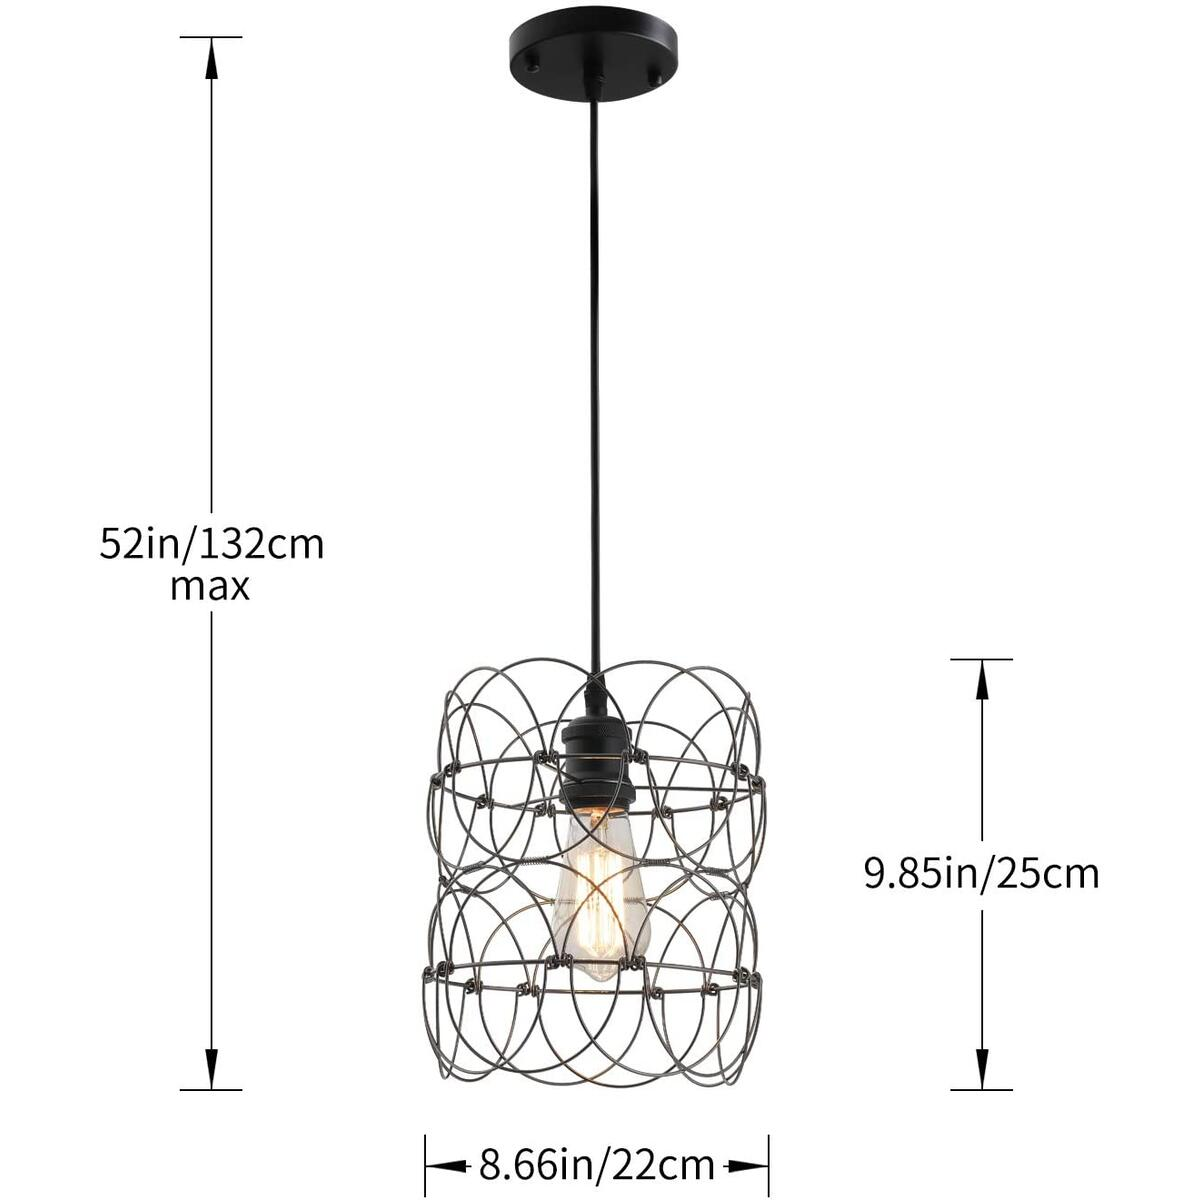 Black Metal Wire Caged Pendant Lighting Hanging Light Fixture, Multi Shape Farmhouse Pendant Light E26/E27 Dining Room Lighting Fixtures for Kitchen Island Living Room Hallway Entryway Foyer Lighting